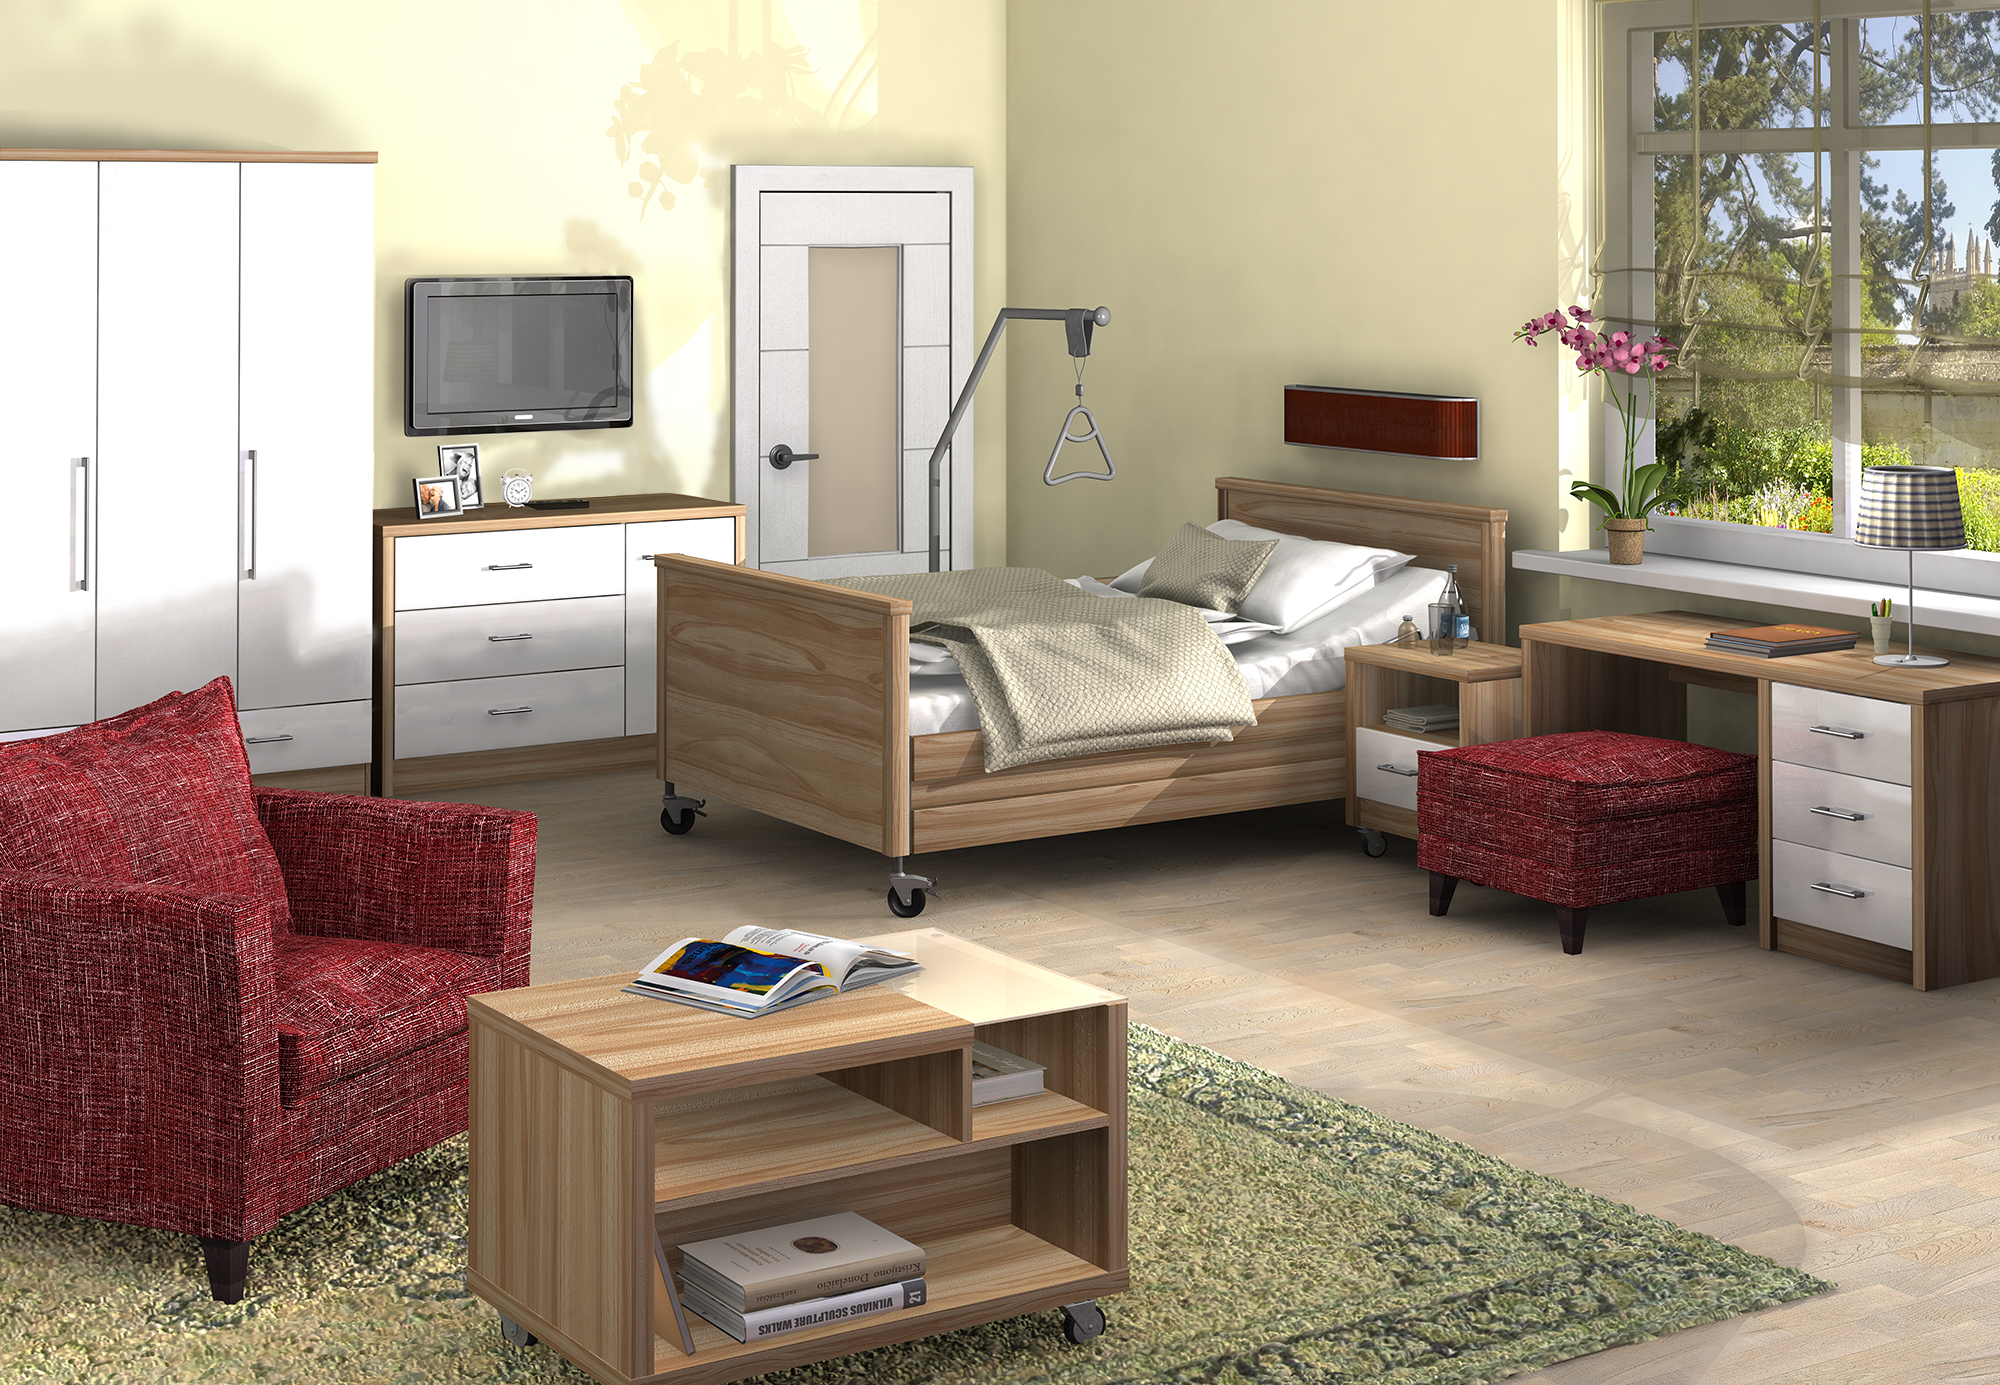 Come back FURNITURE FOR ACCOMMODATION SECTOR  STUDENT ACCOMMODATION    HOTELS   CARE HOME. Care homes furniture production   Nordicidea eu   FURNITURE FOR